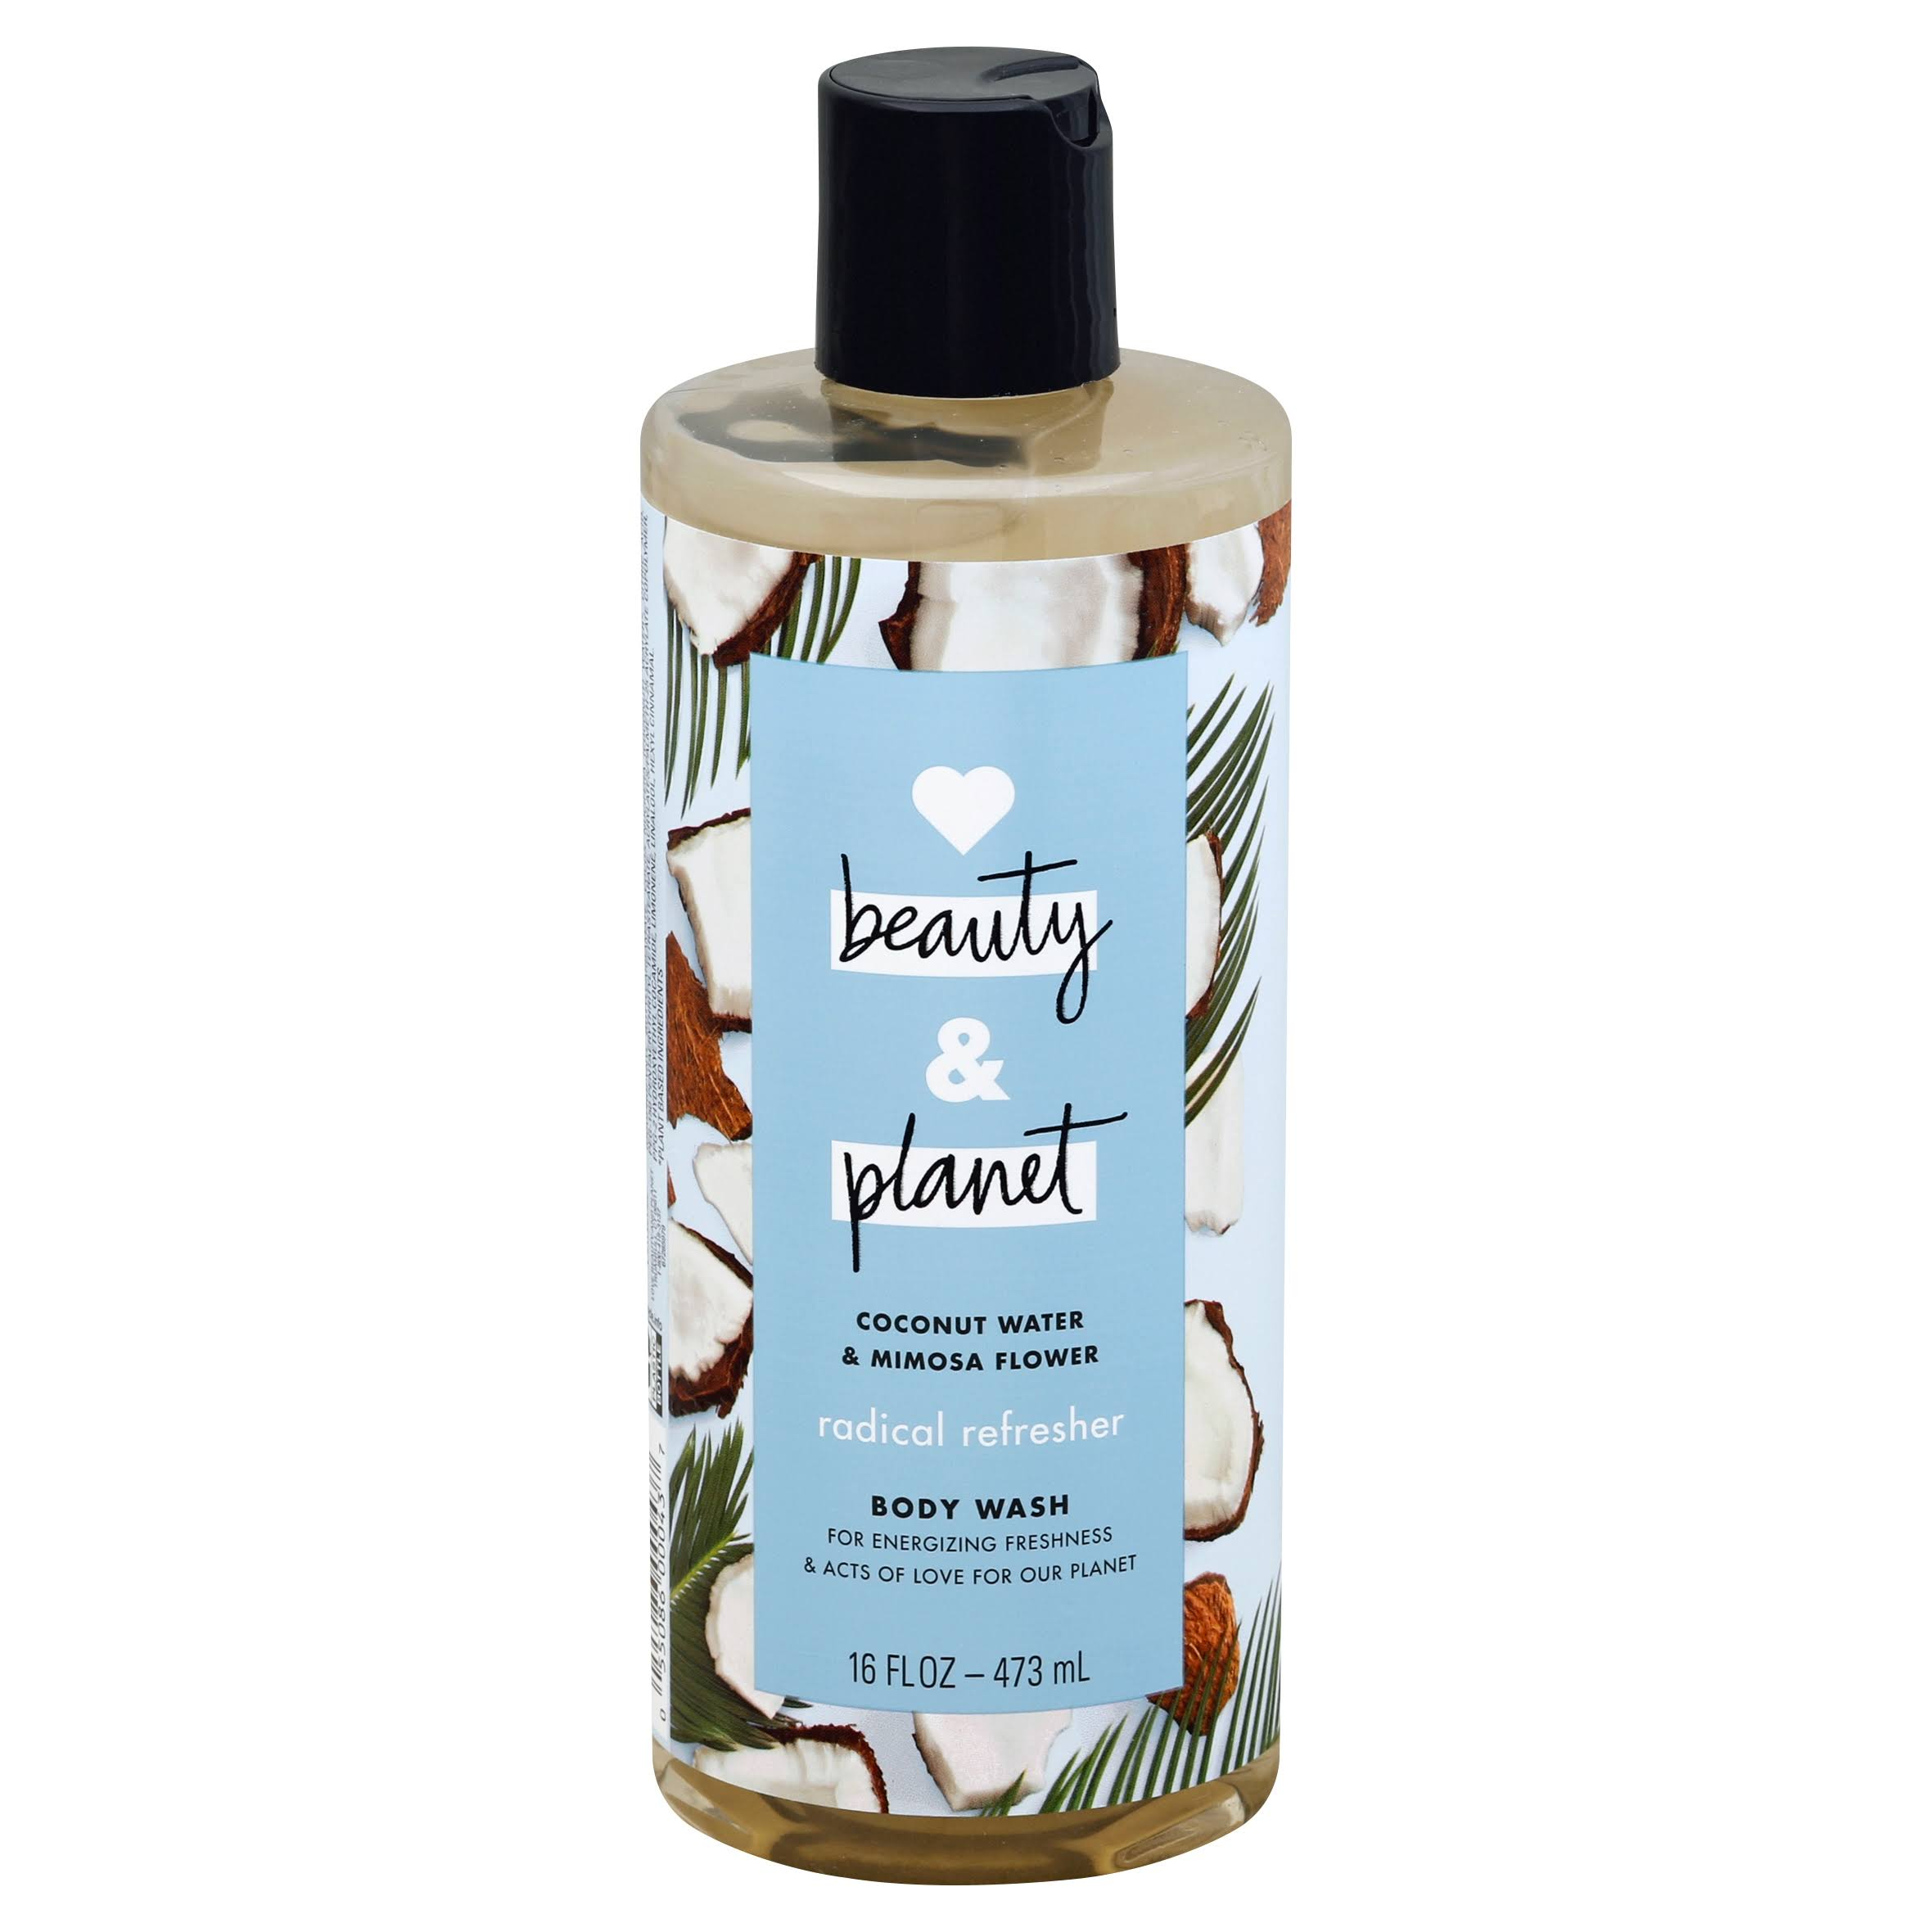 Love Beauty And Planet Radical Refresher Body Wash - Coconut Water & Mimosa Flower, 16oz